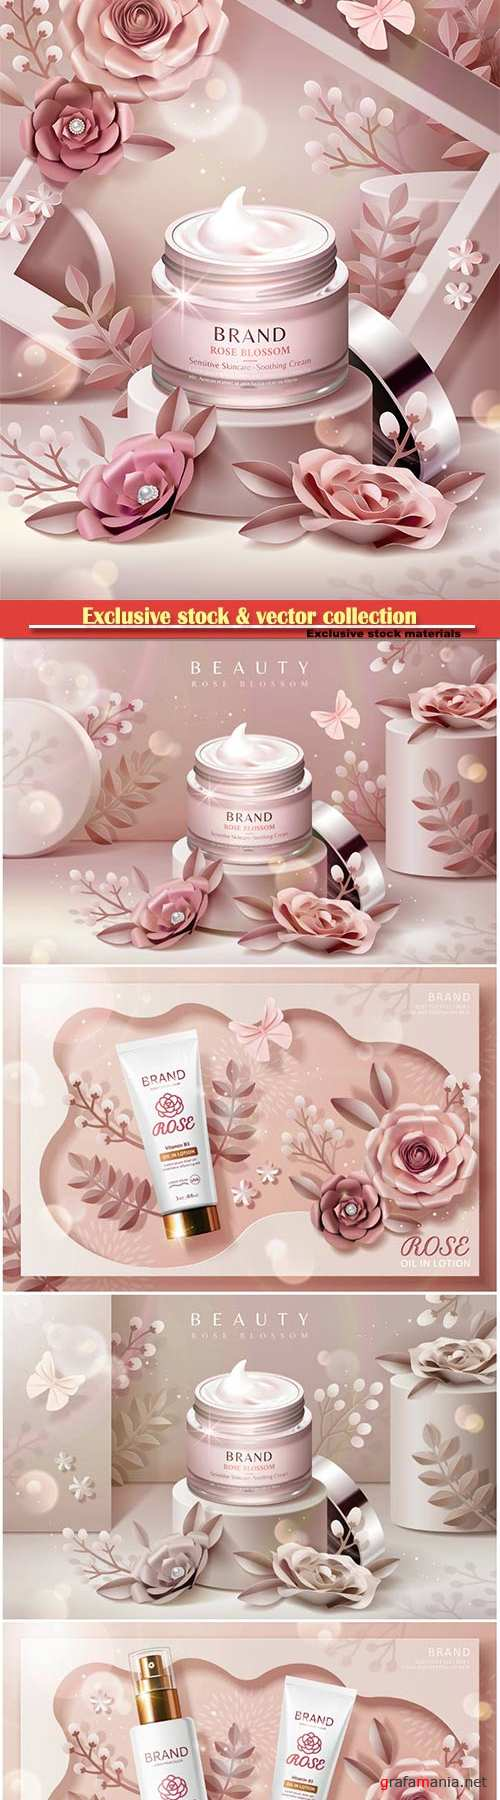 Cream jar ads on podium with paper flowers and frame background in 3d illustration